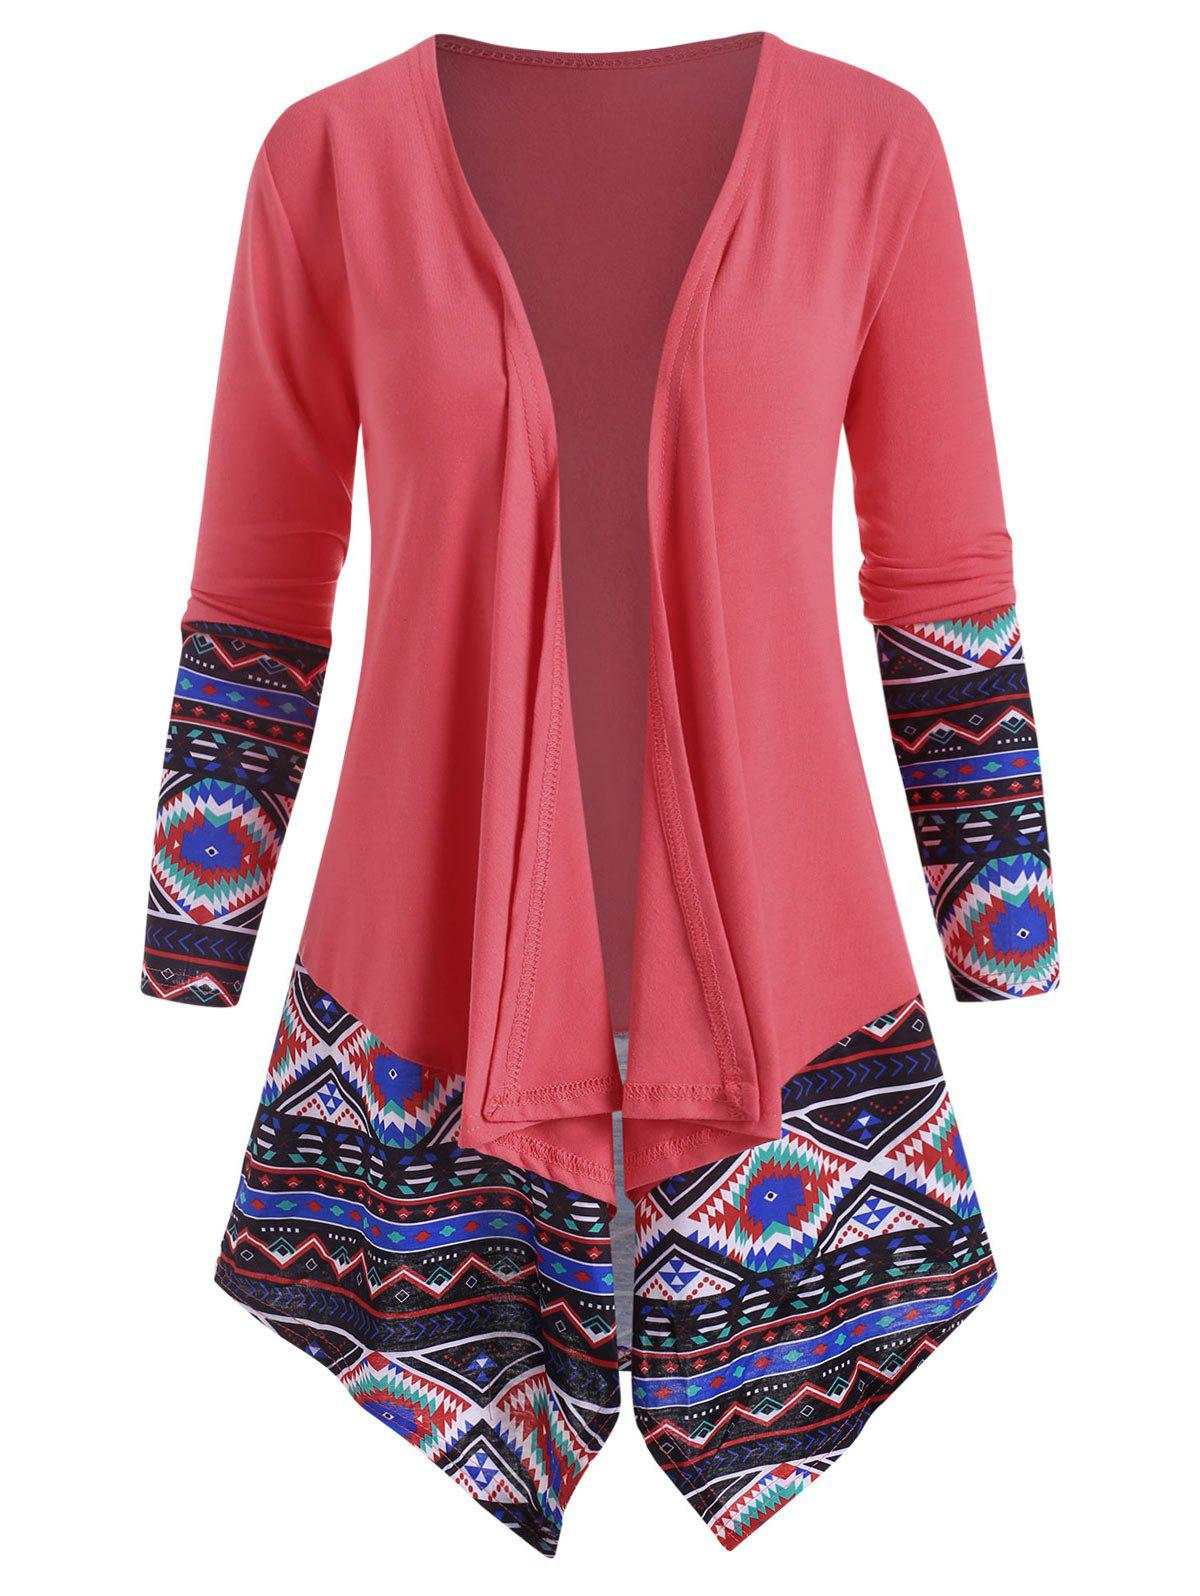 Ethnic Printed Draped Front Jacket - LIGHT PINK M